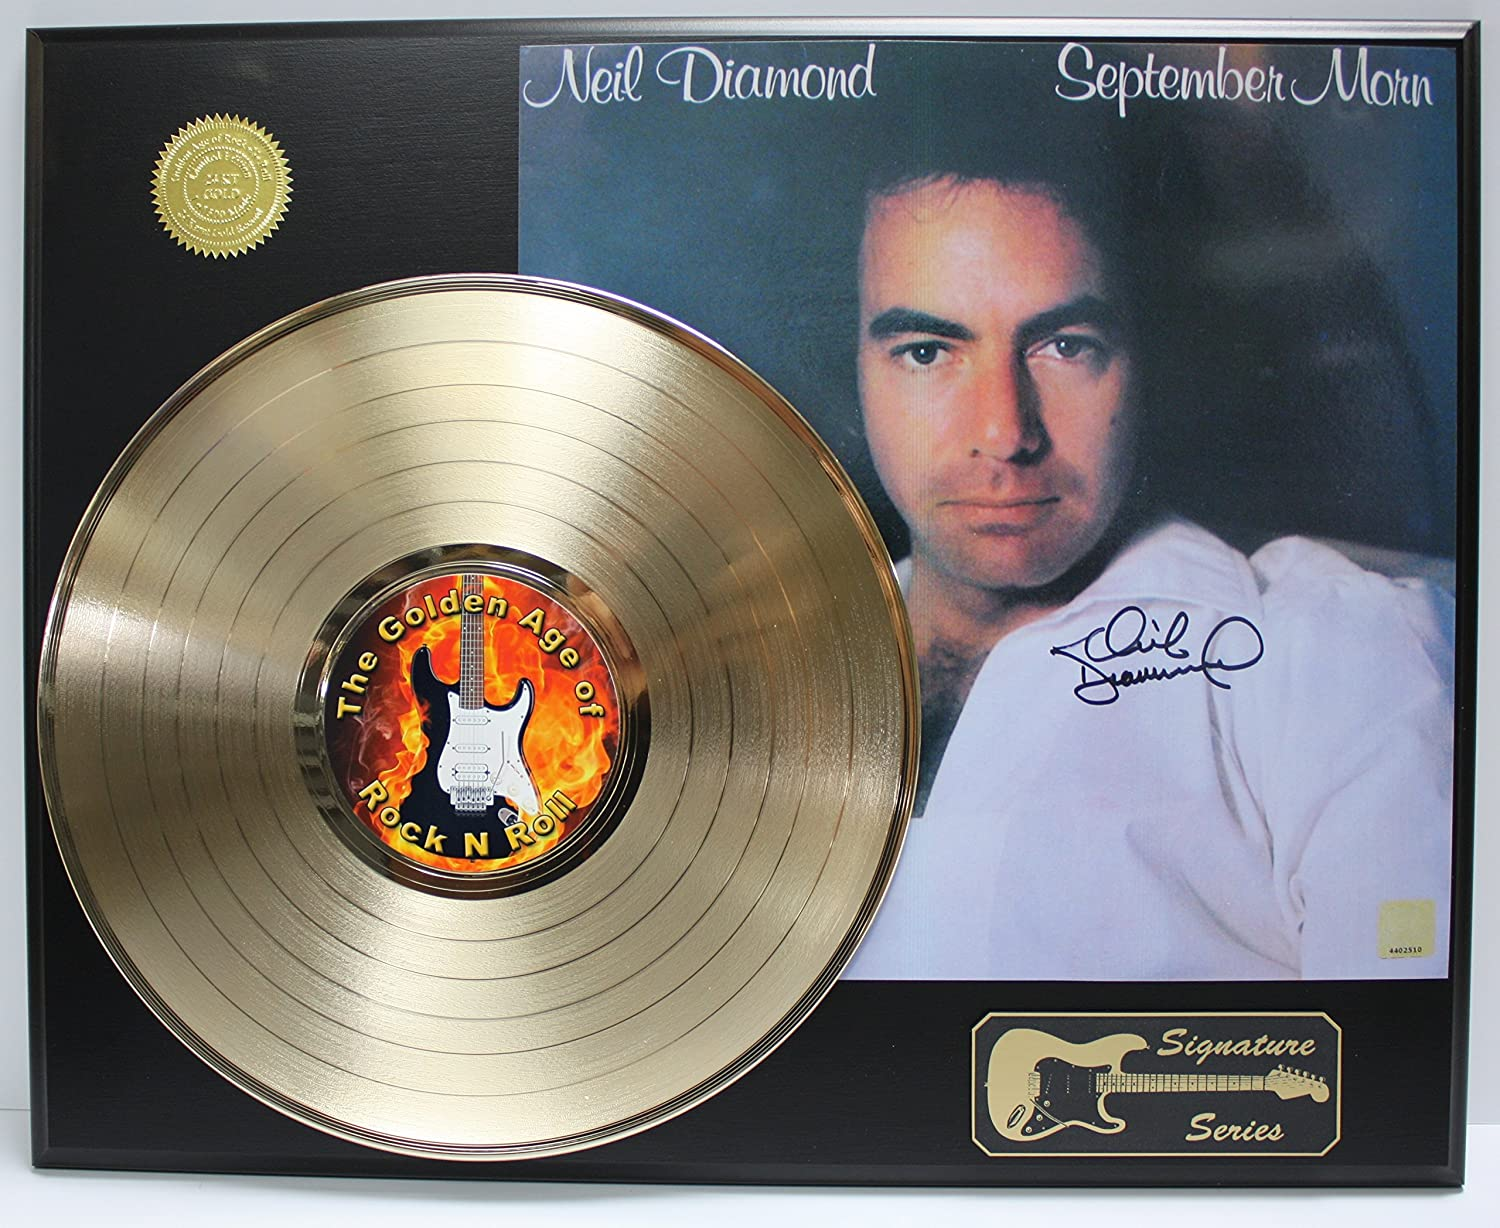 Neil Diamond Gold LP Record Signature Series Limited Edition Display